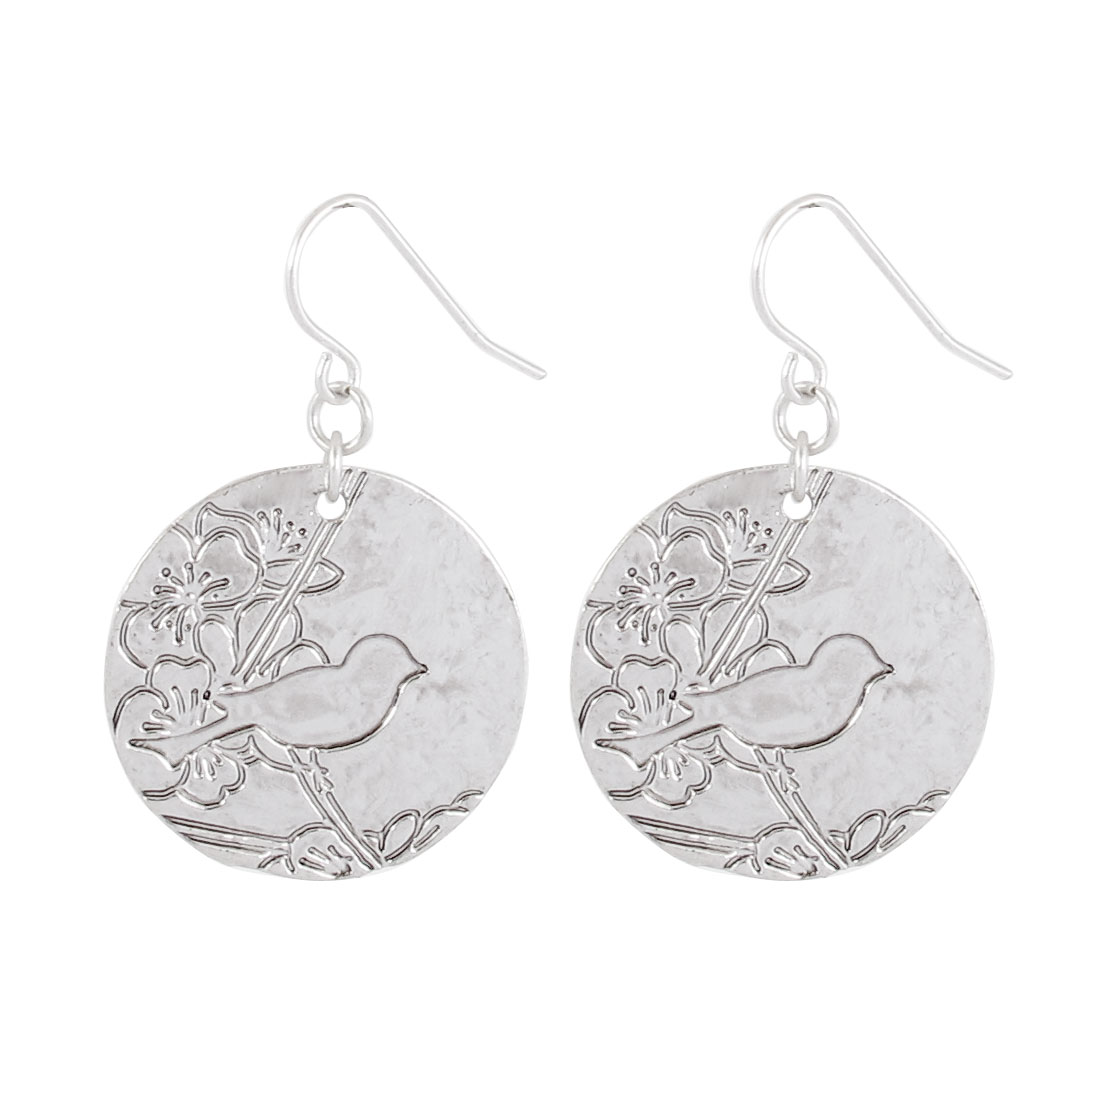 "Women Metal Bird Pattern Coin Shape Pendant Hook Earrings Earbobs Eardrop Silver Tone 1.6"" Length Pair"